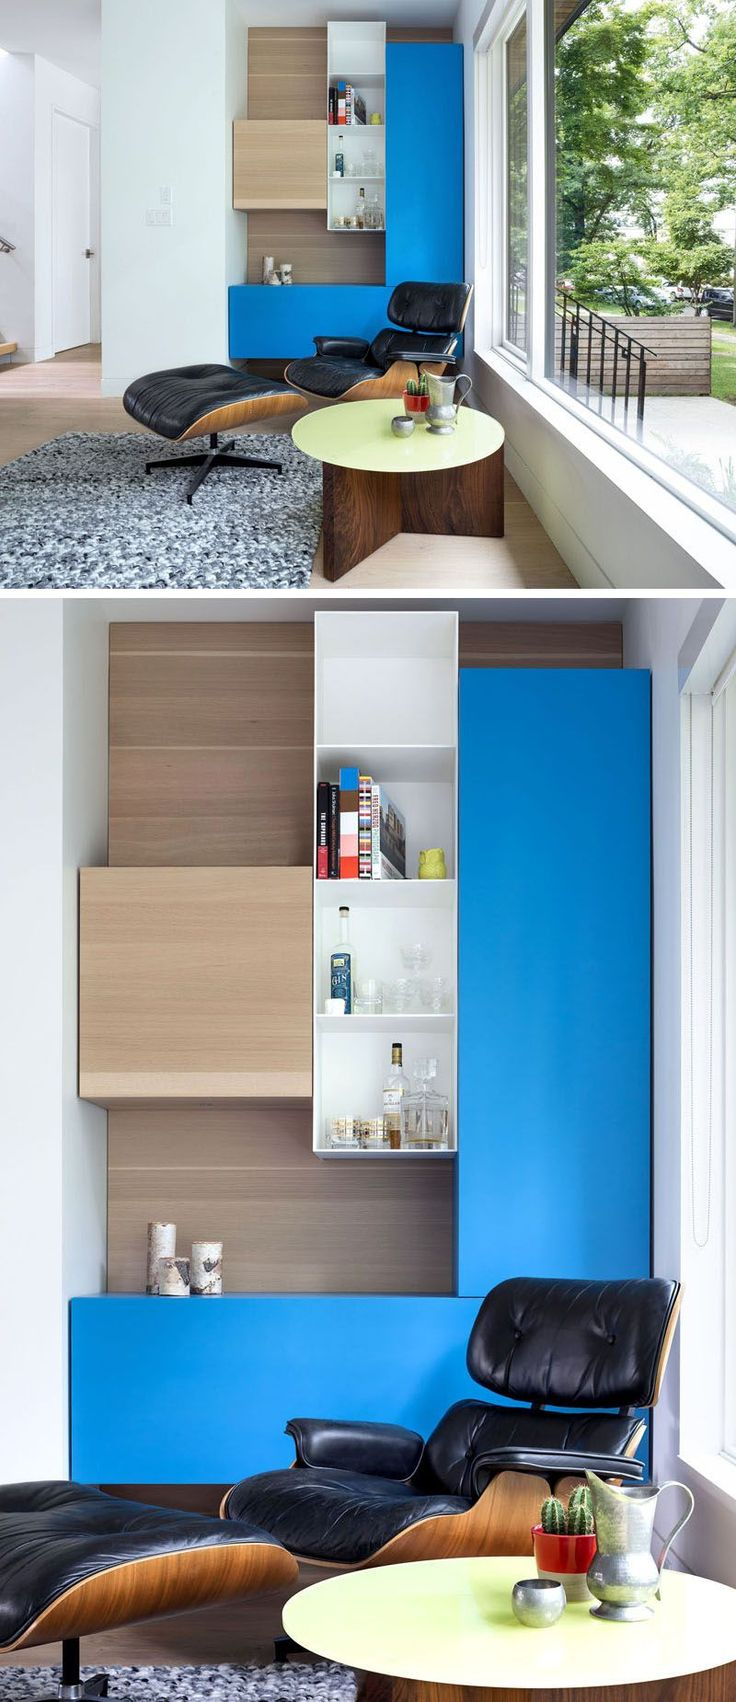 Pops of color and built-in shelving have been used in this small sitting area.